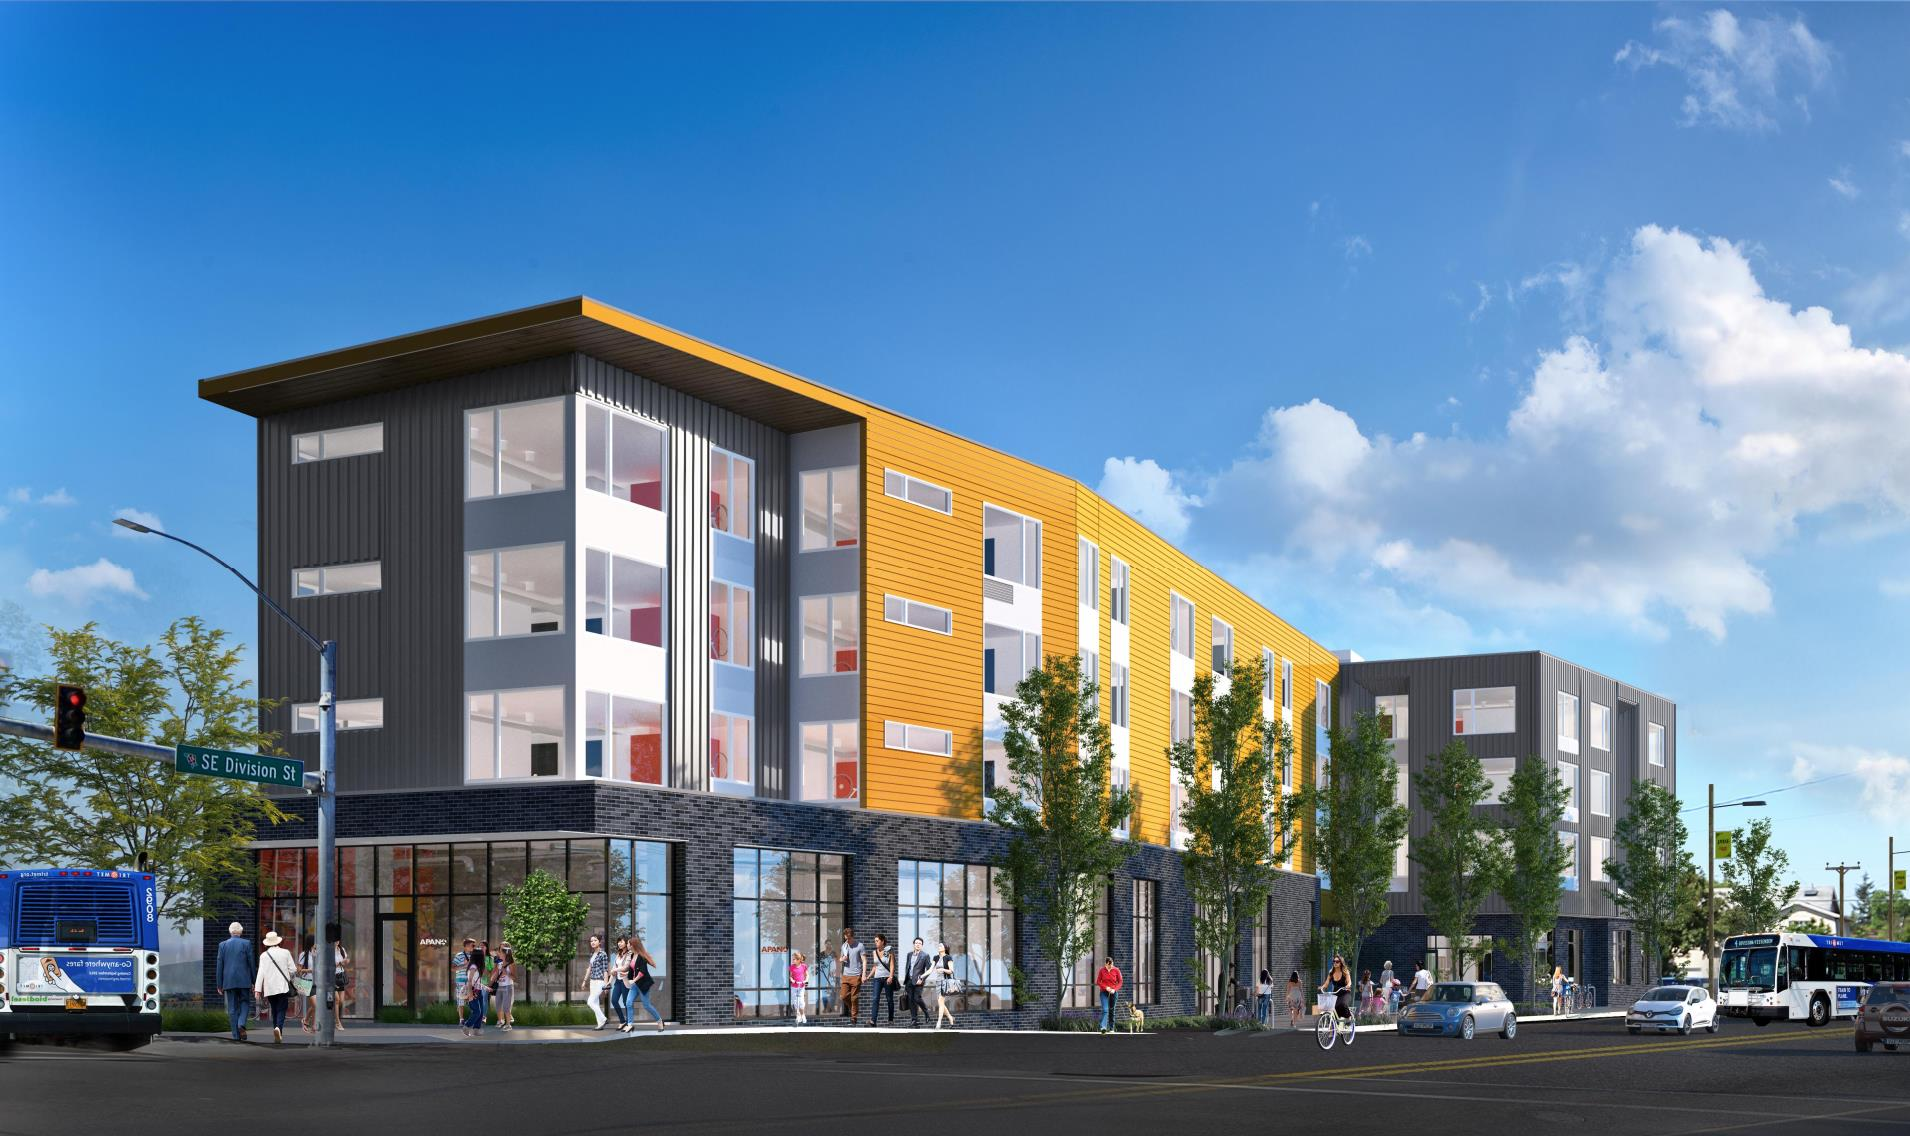 Rendering of Orchards of 82nd by SERA Architecture.